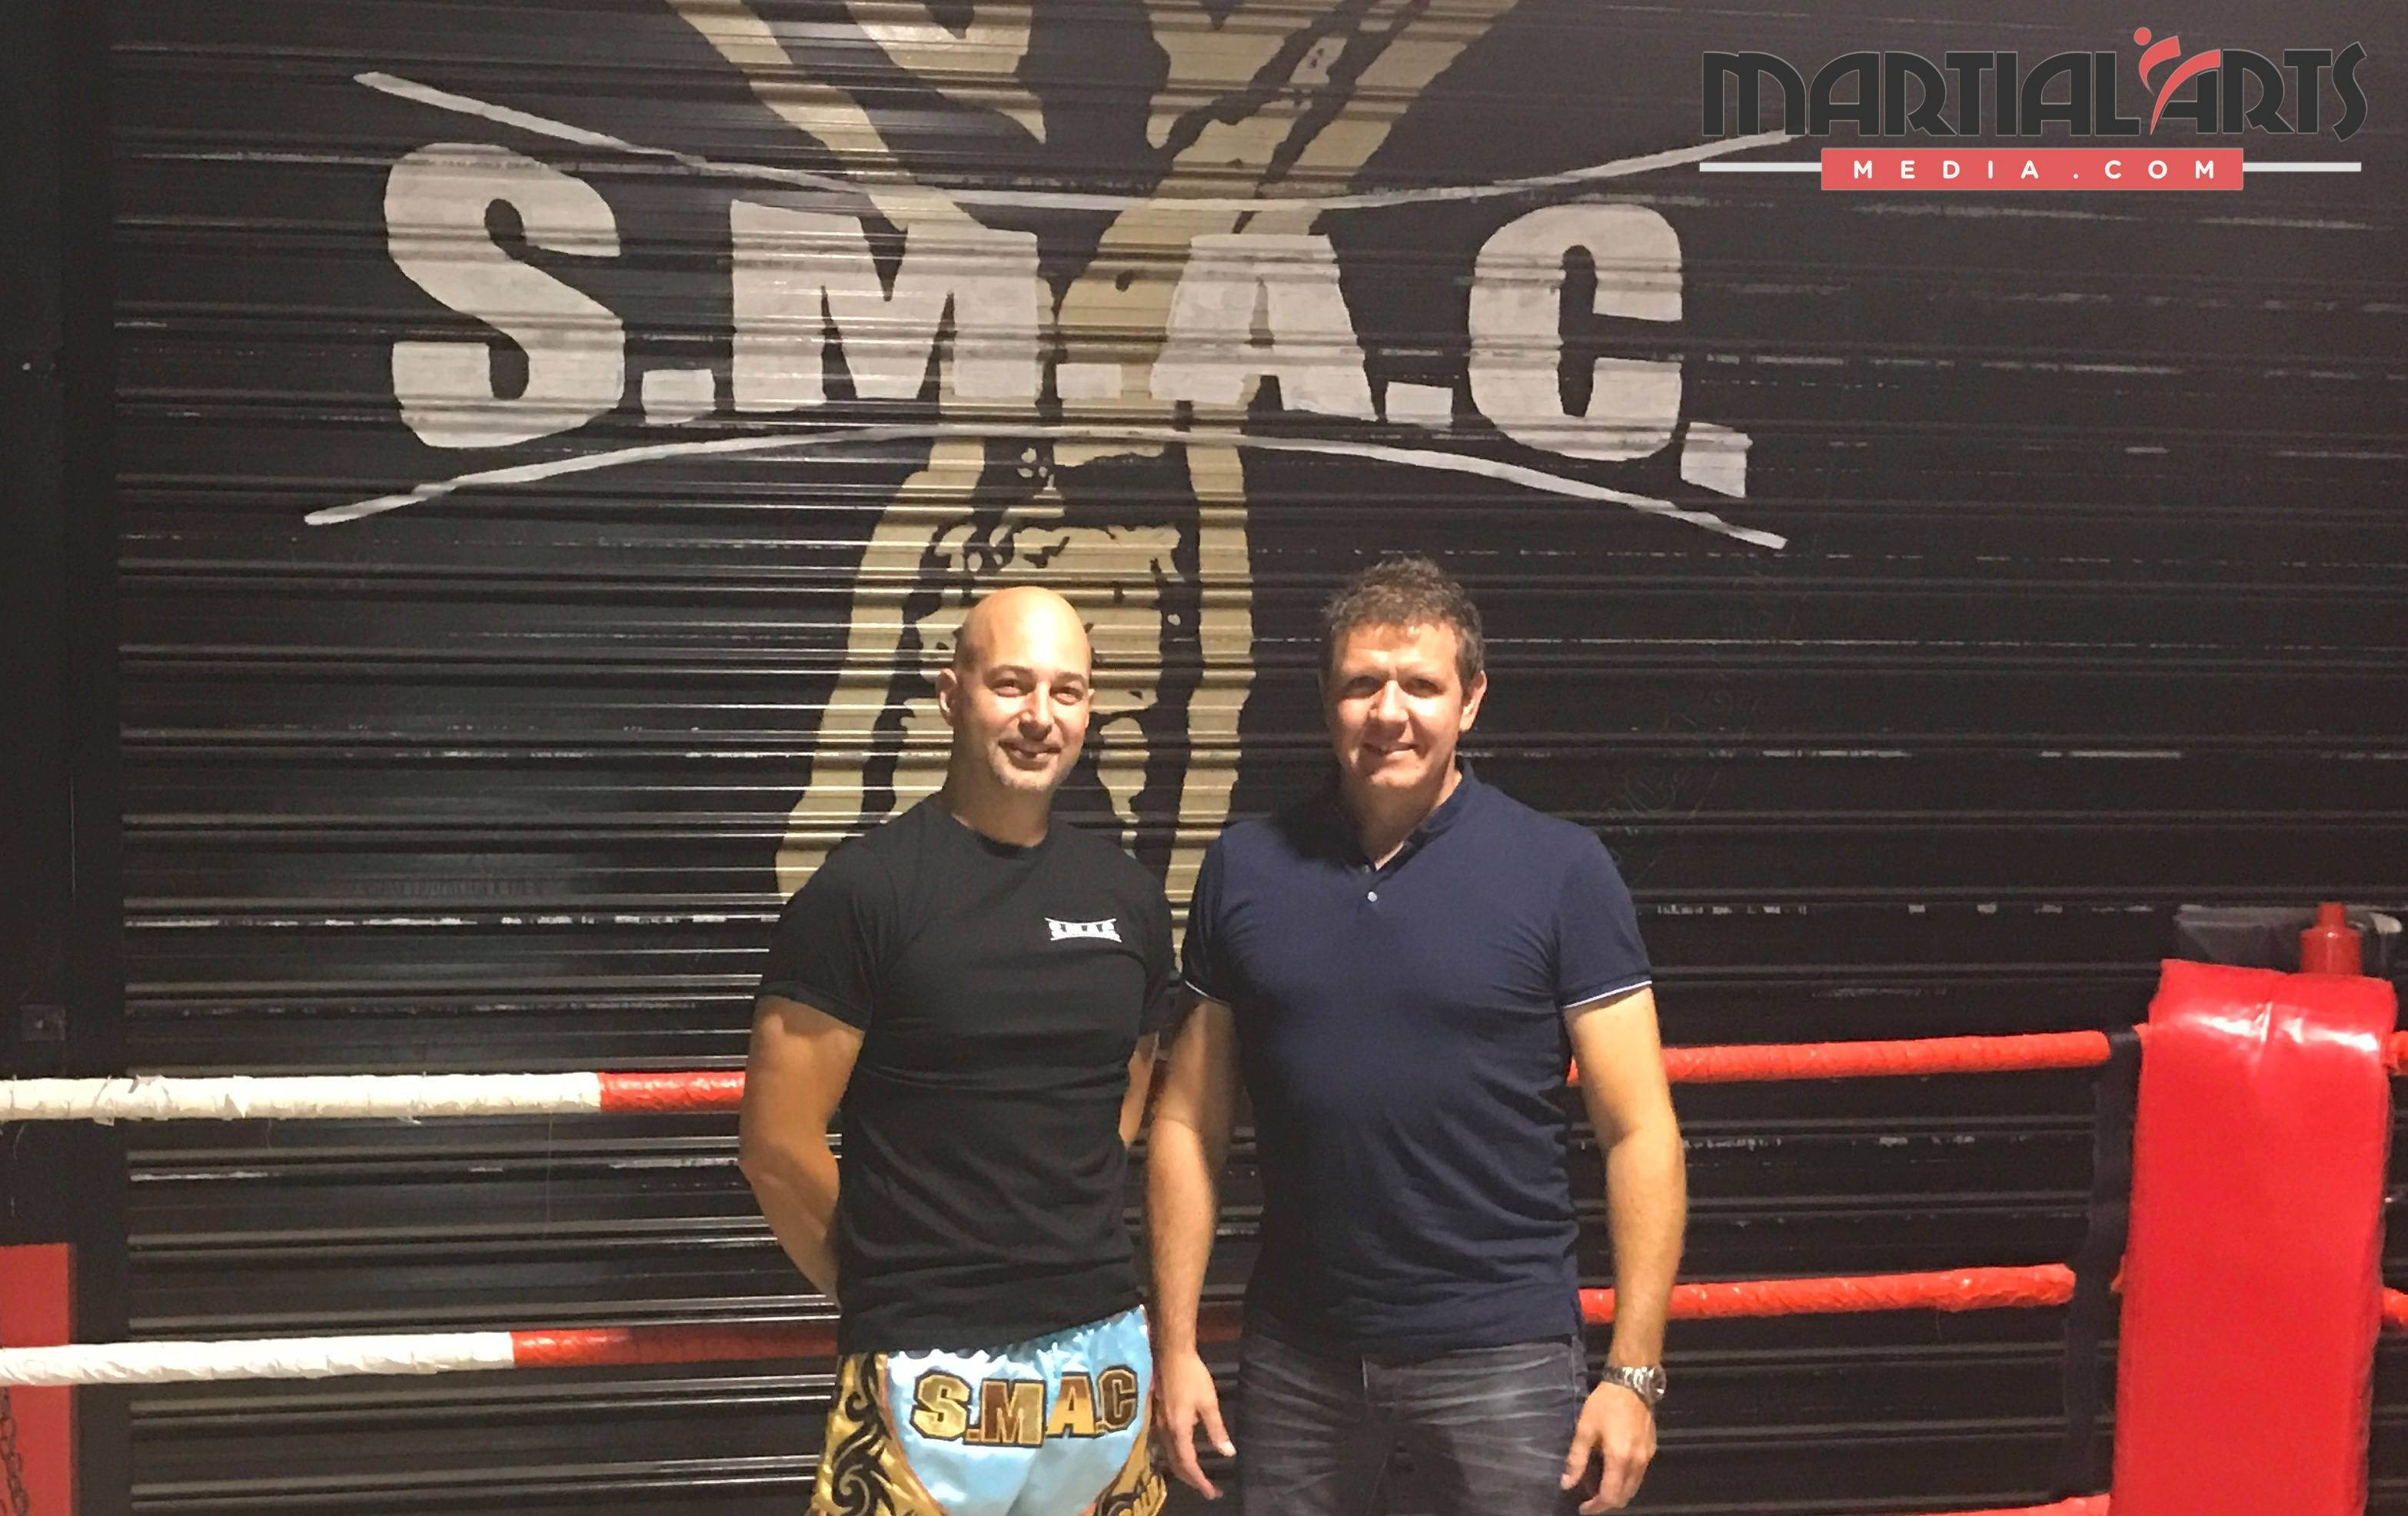 Matt Ball from SMAC with George Fourie